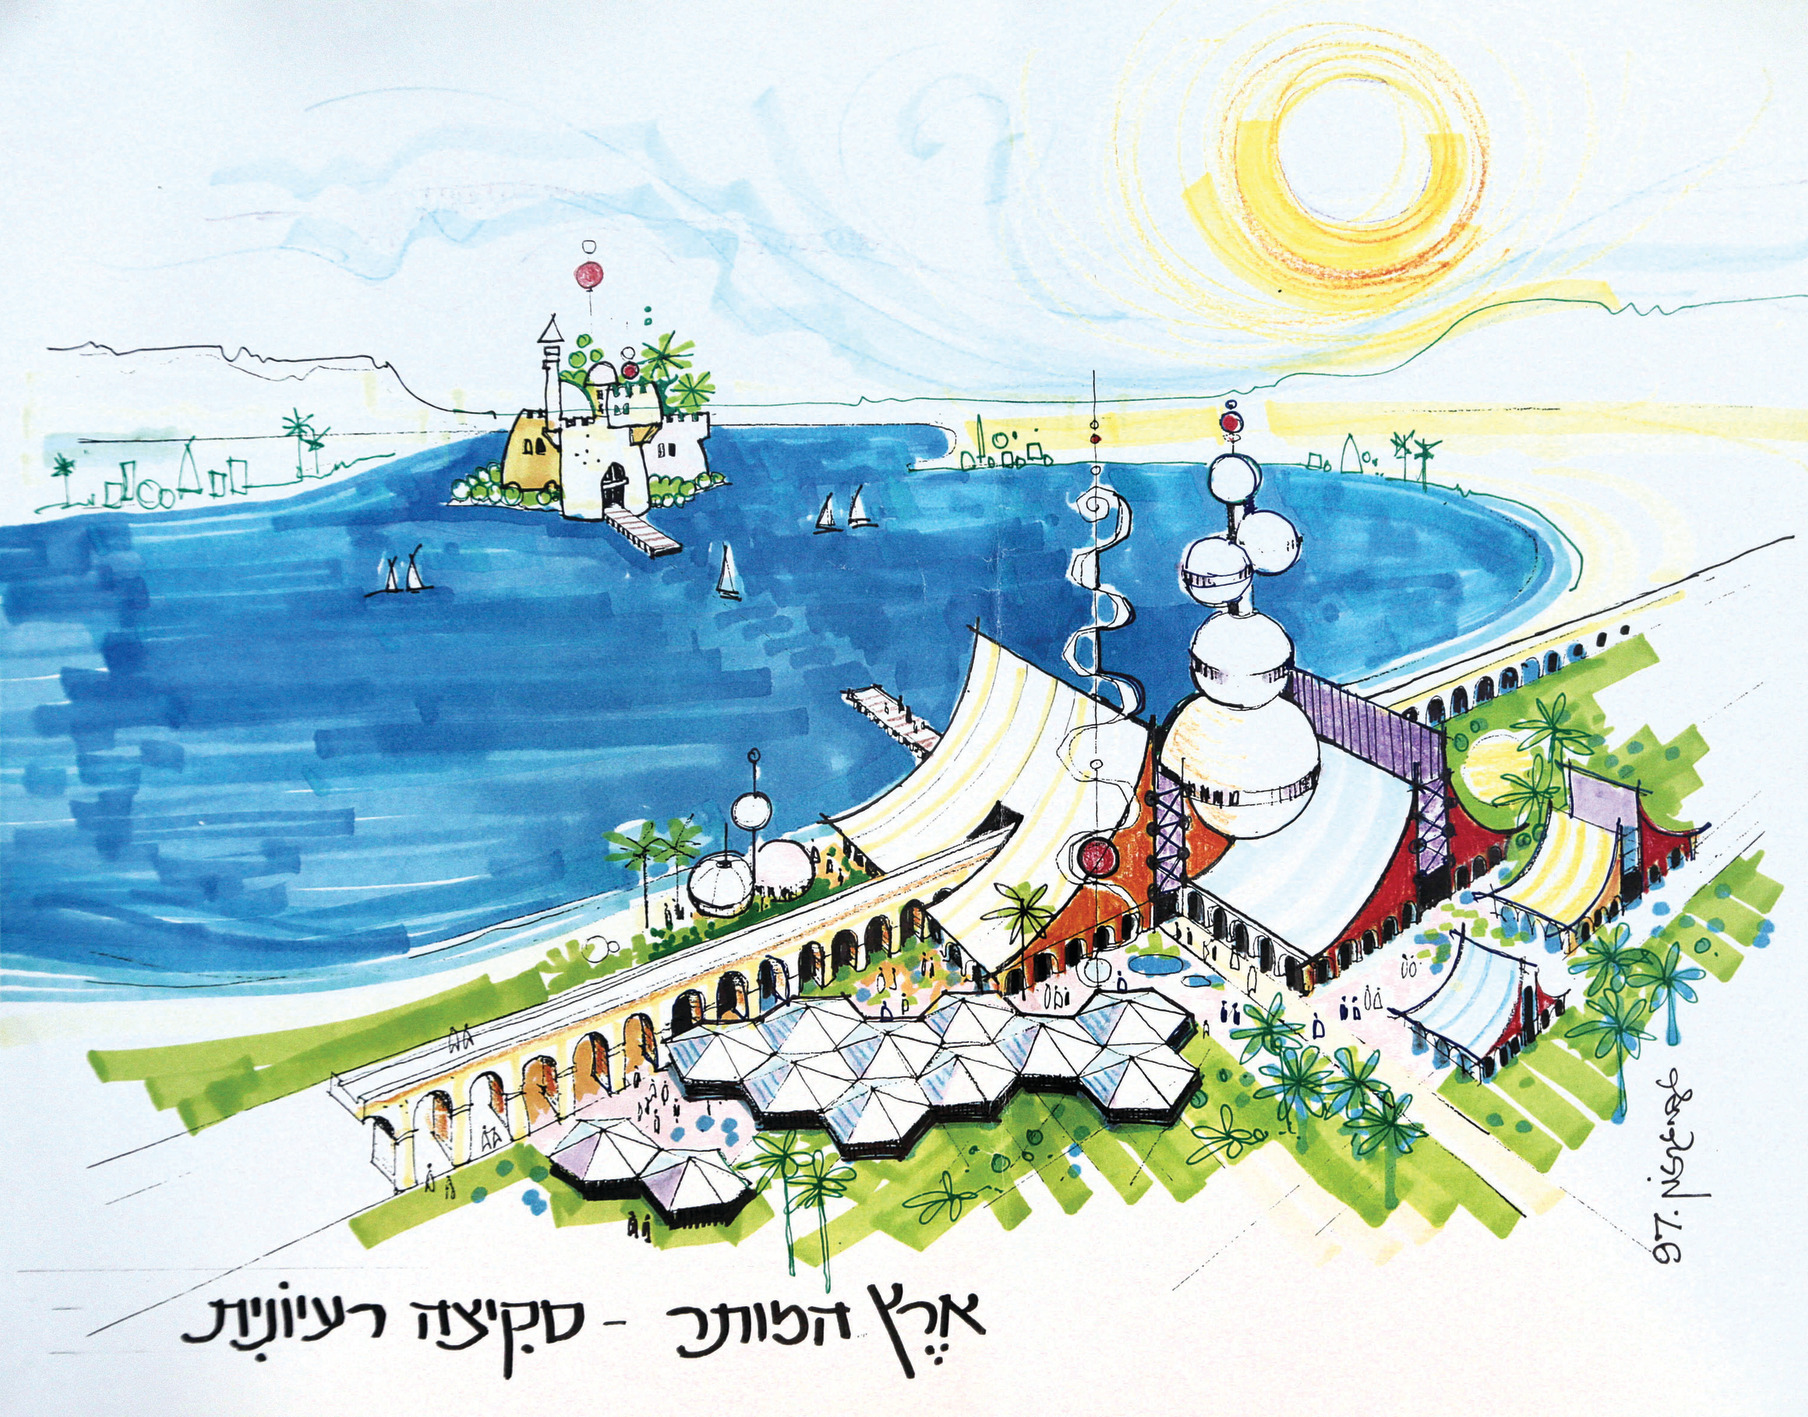 Plans for the Naharayim resort